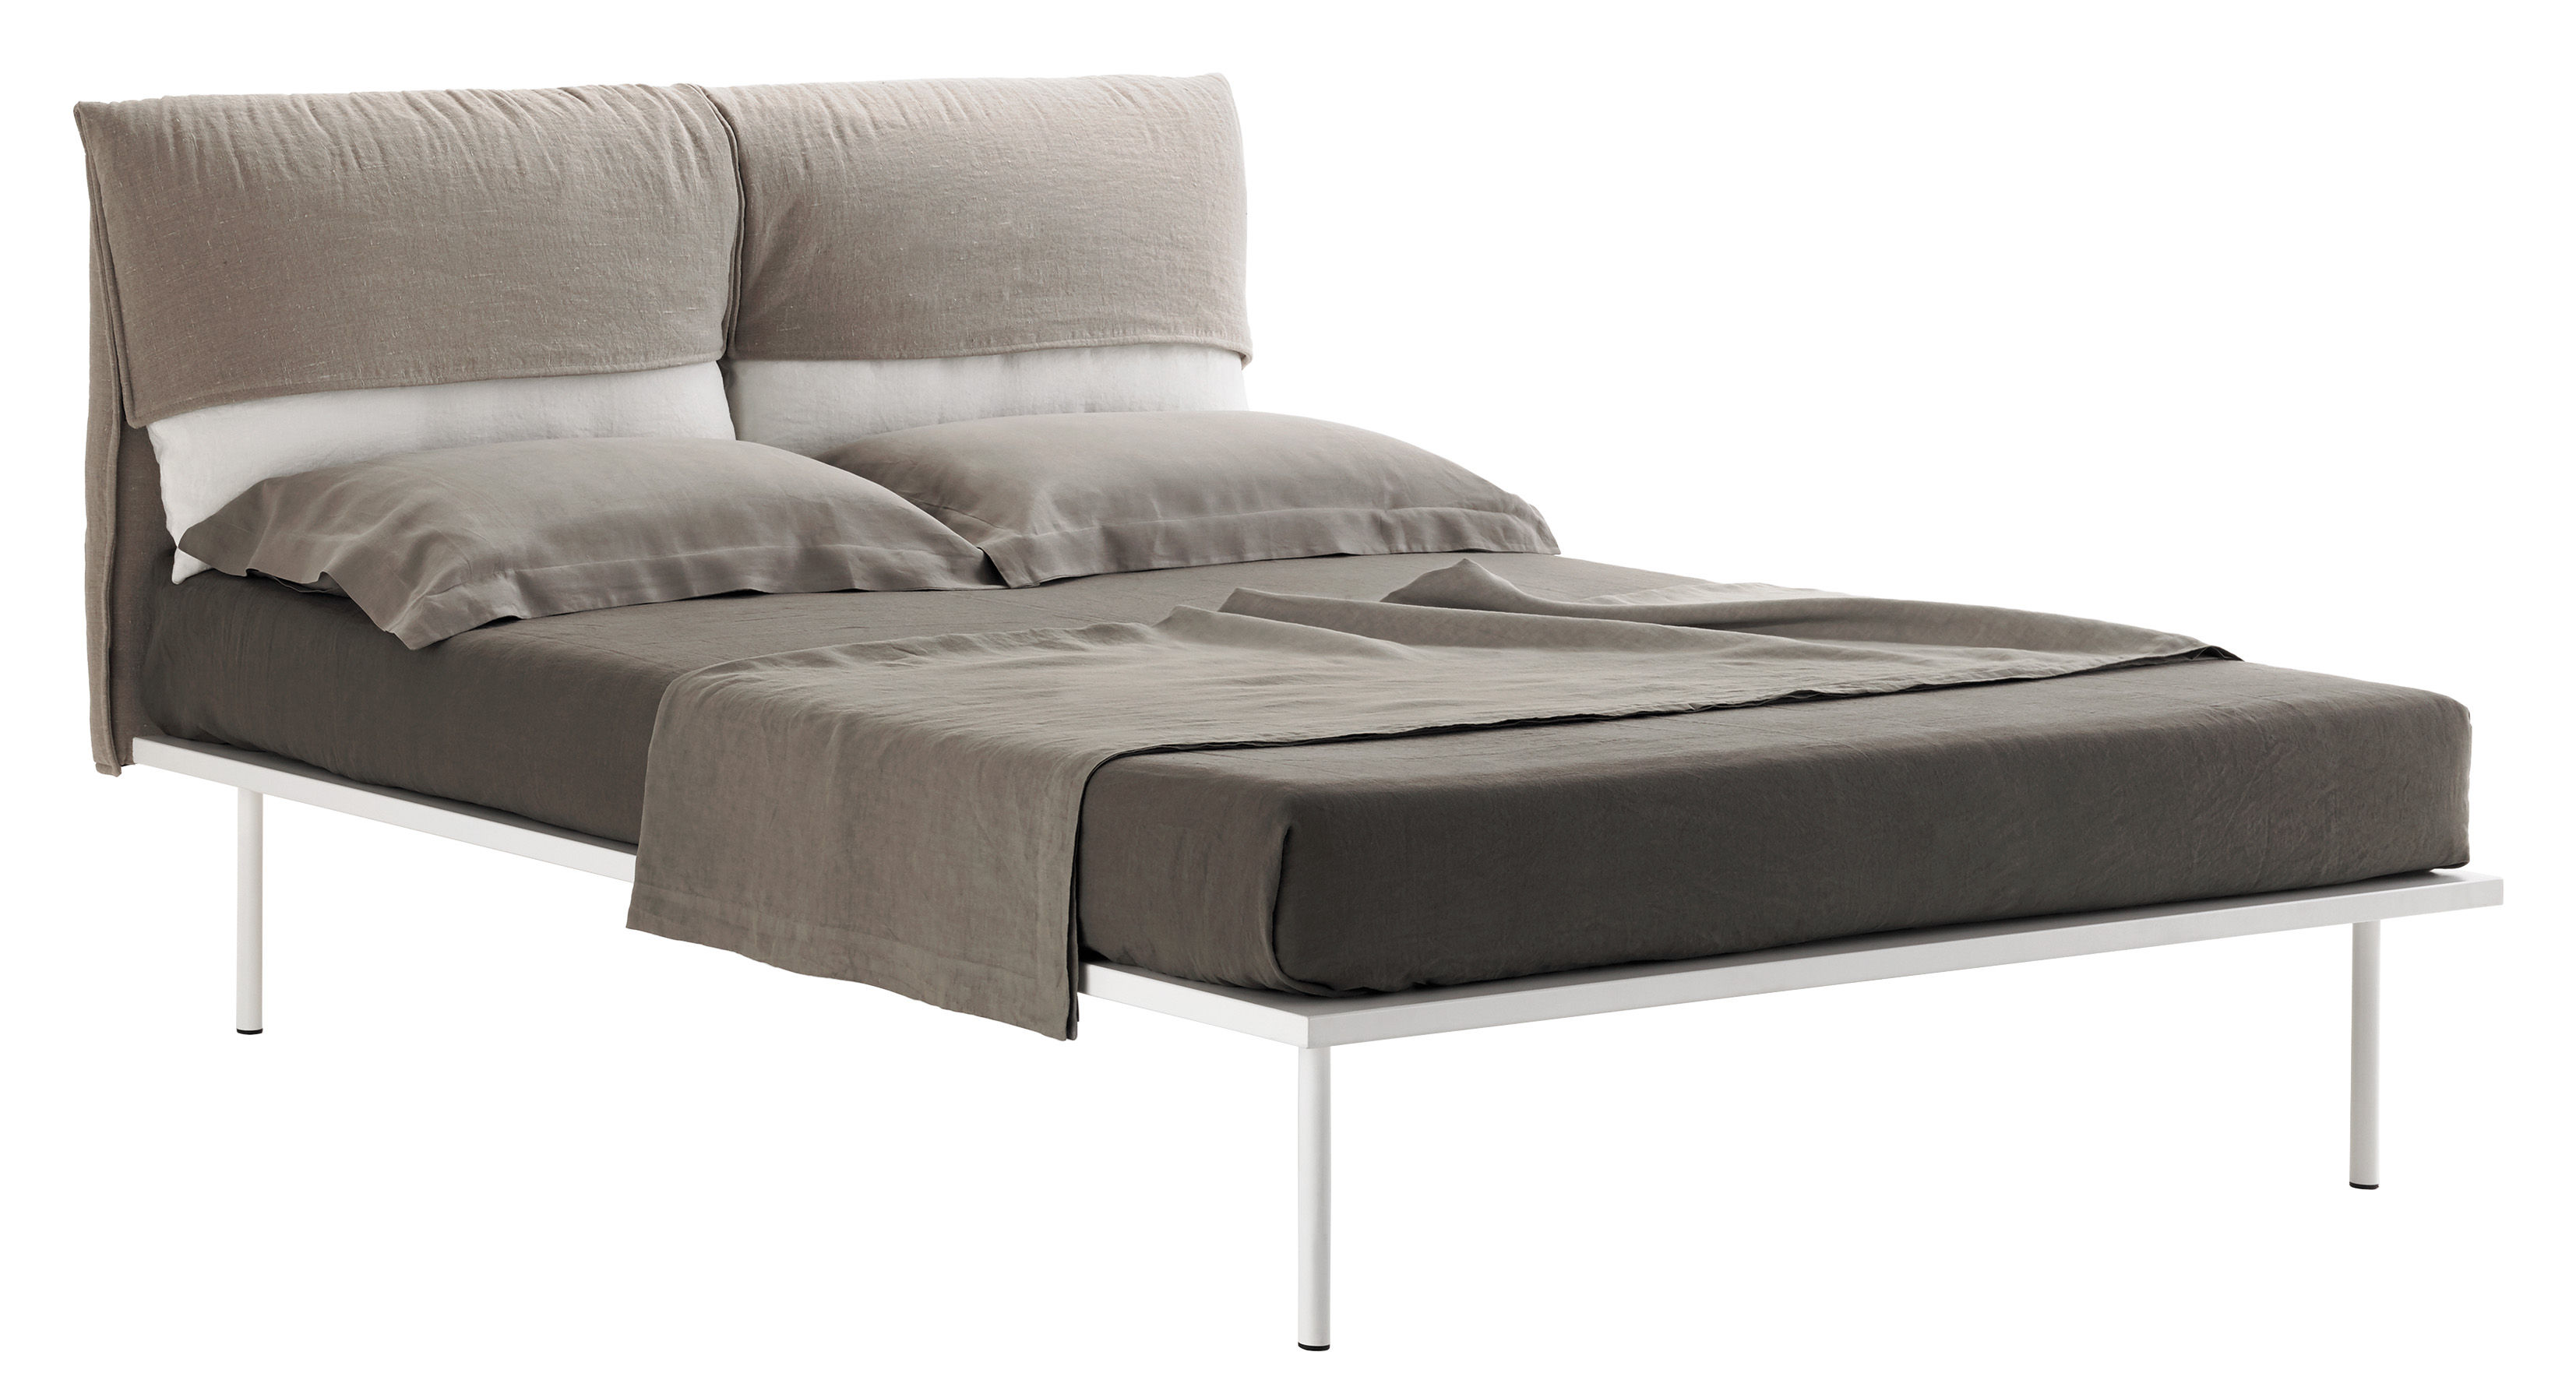 Furniture - Beds - Coverbed Double bed - 176 x 213 cm by Zanotta - White / Taupe fabric - Fabric, Metal, Polyurethane foam